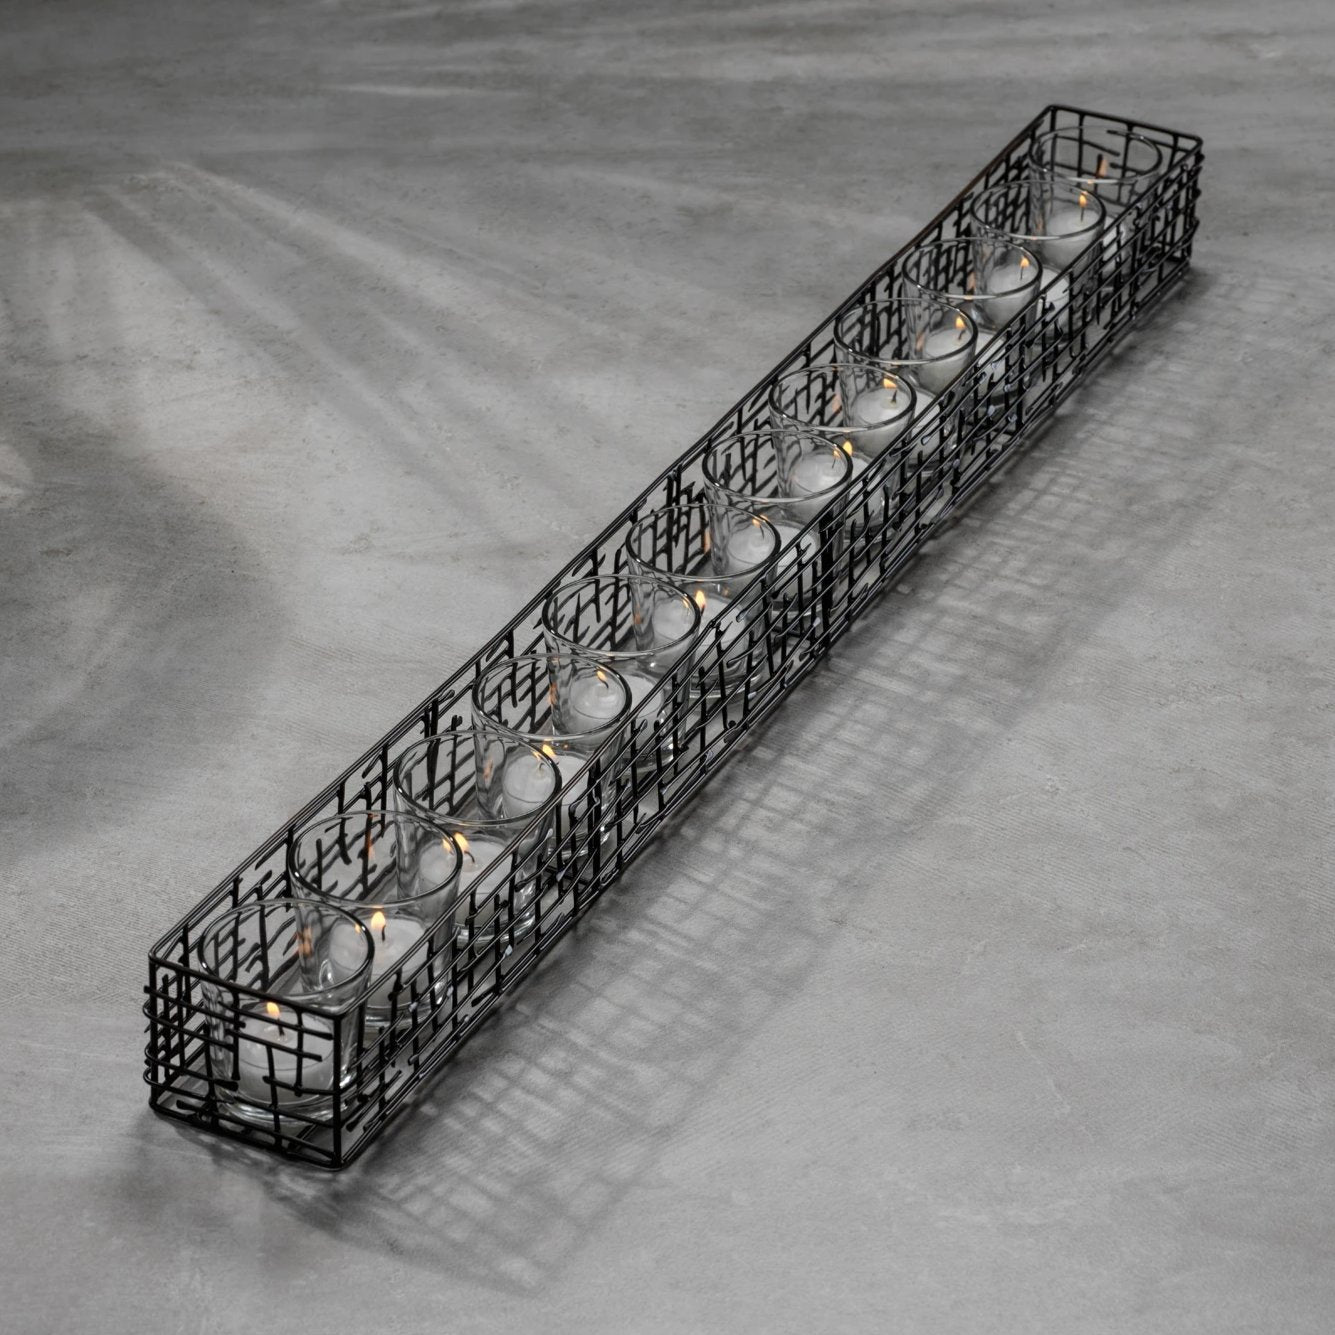 Dakar Metal 12 Glass Candle Holder - CARLYLE AVENUE